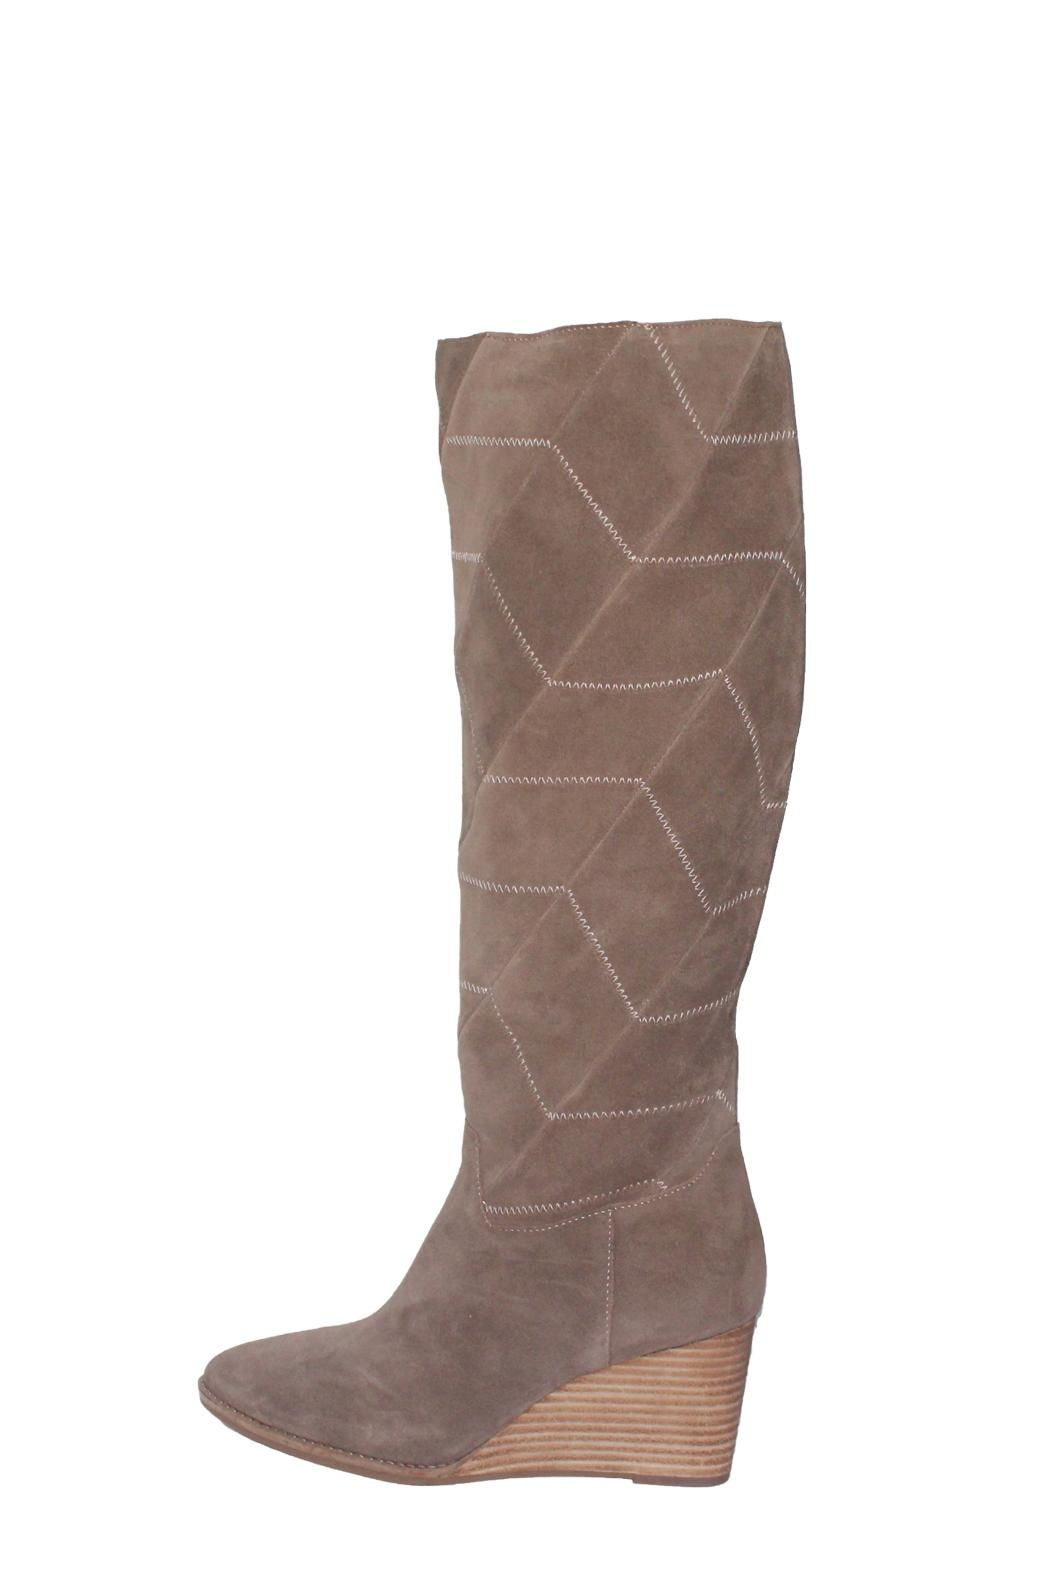 Lucky Brand Preeka Tall Water Proof Suede Chevron Stitch  Boots - Main Image